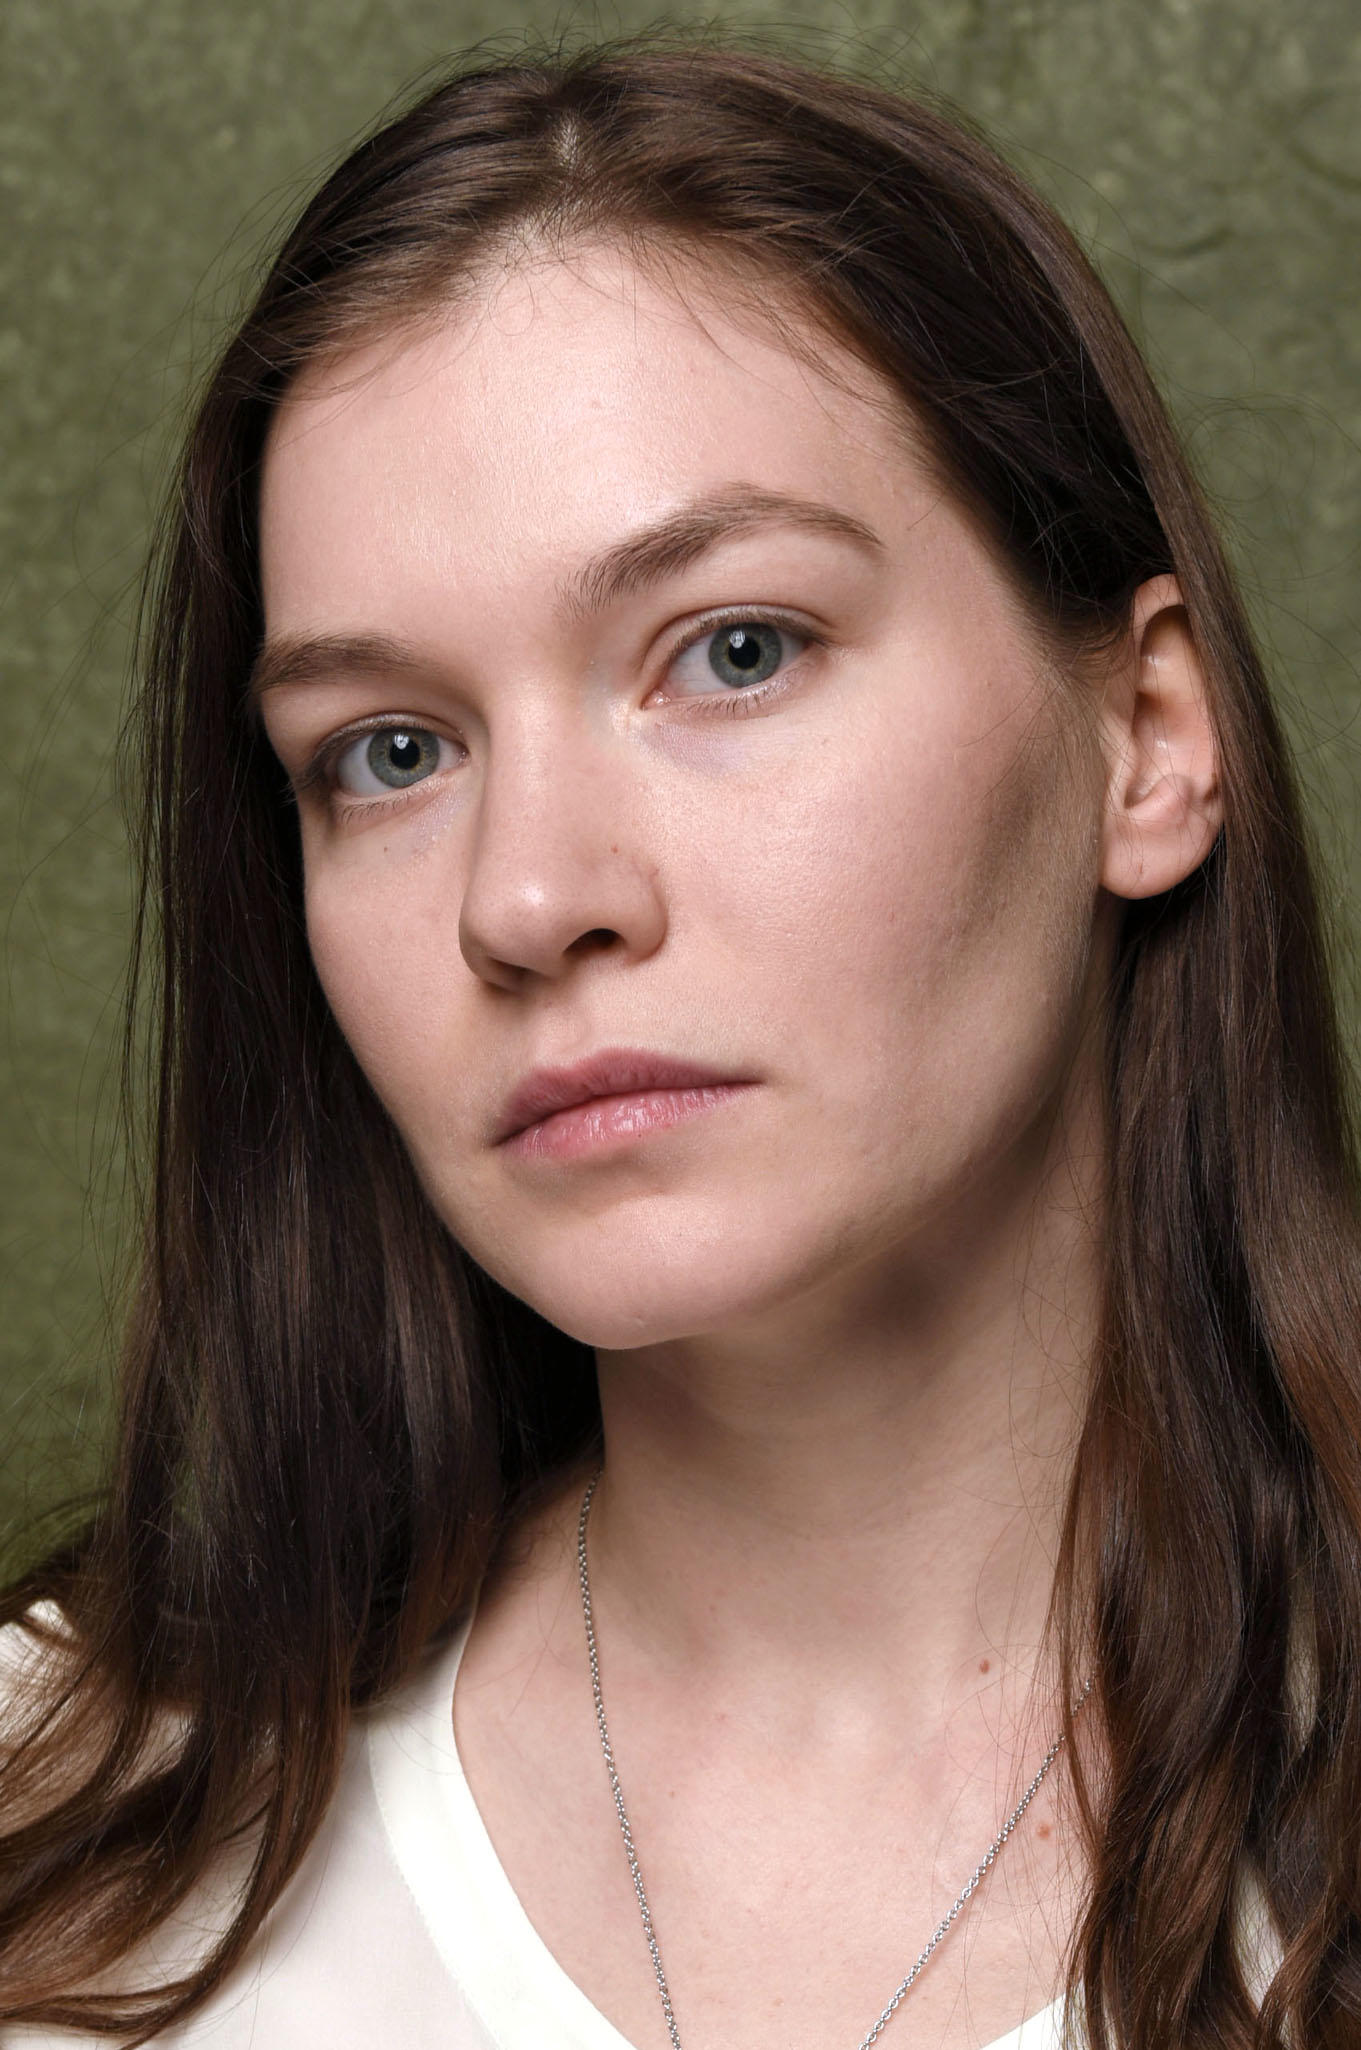 Hannah Gross during the 2015 Sundance Film Festival.